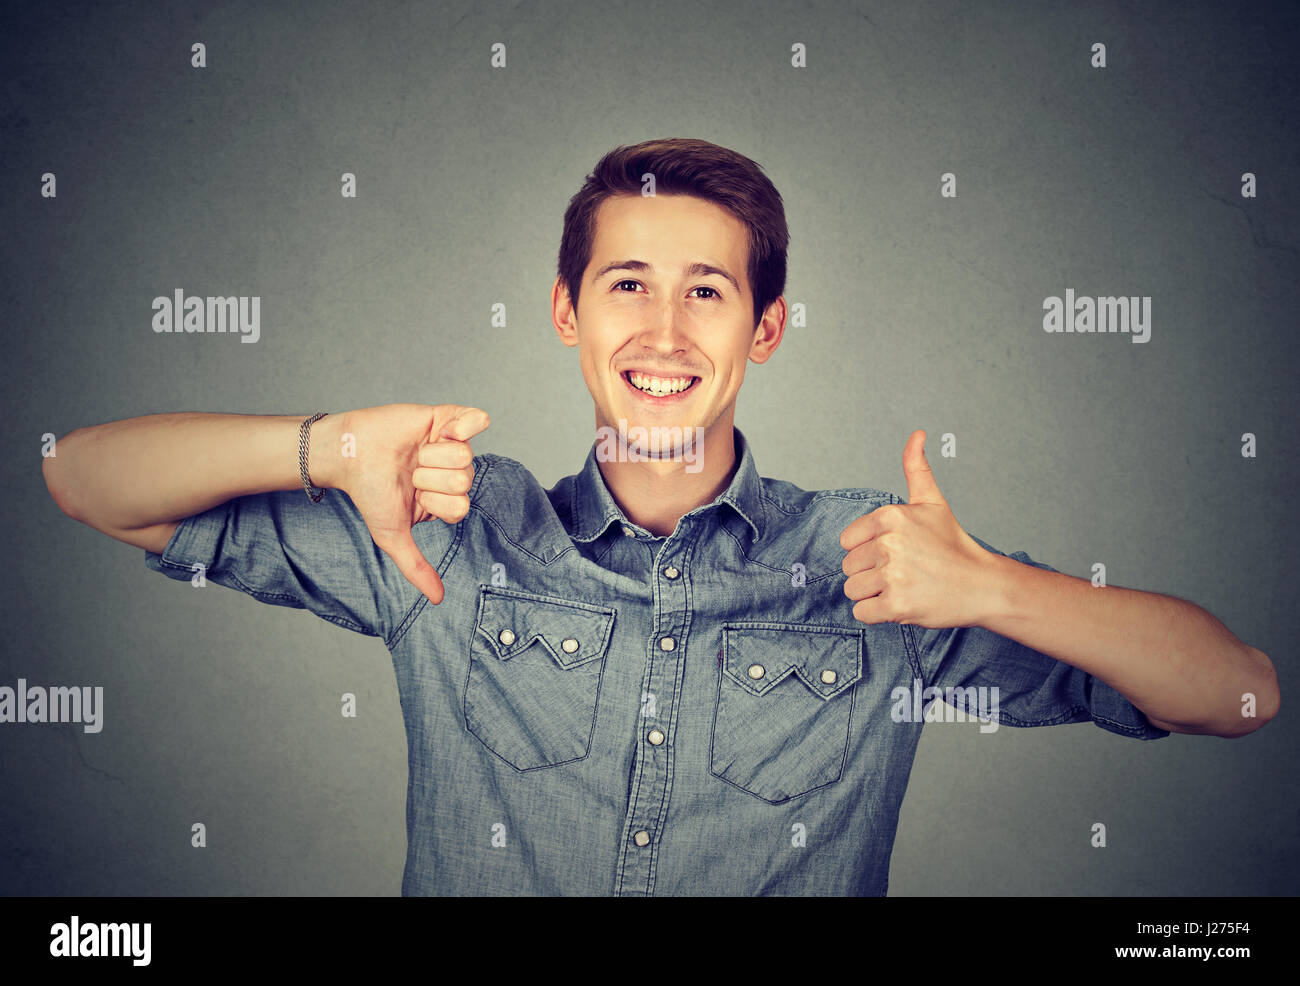 Happy man with thumbs down thumbs up gesture - Stock Image